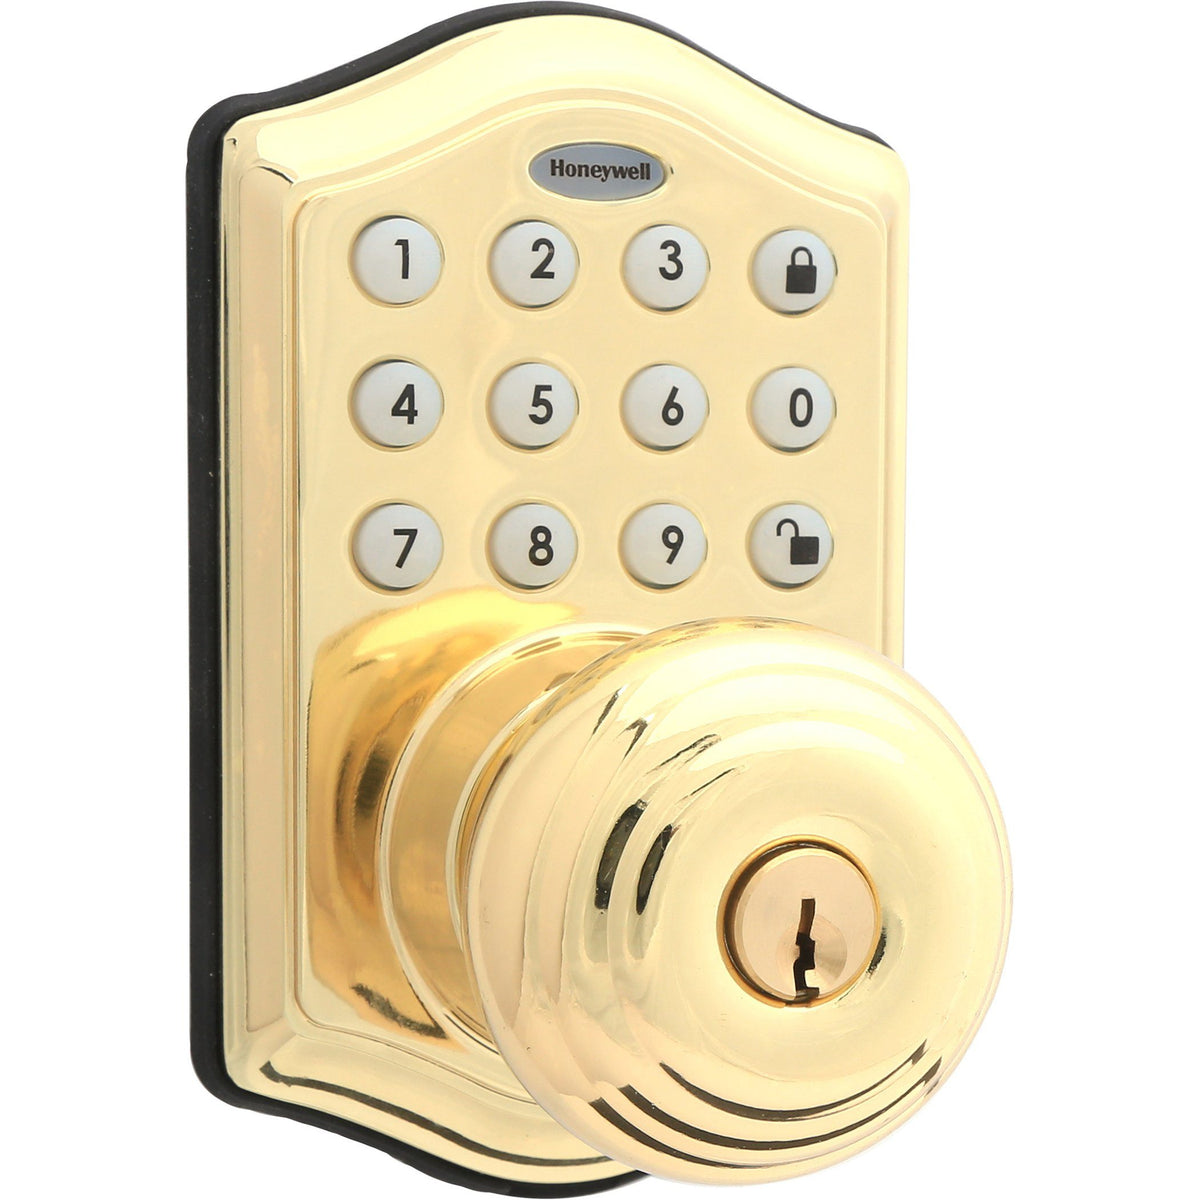 Honeywell 8732001 Electronic Entry Knob Door Lock with Keypad in Polished Brass